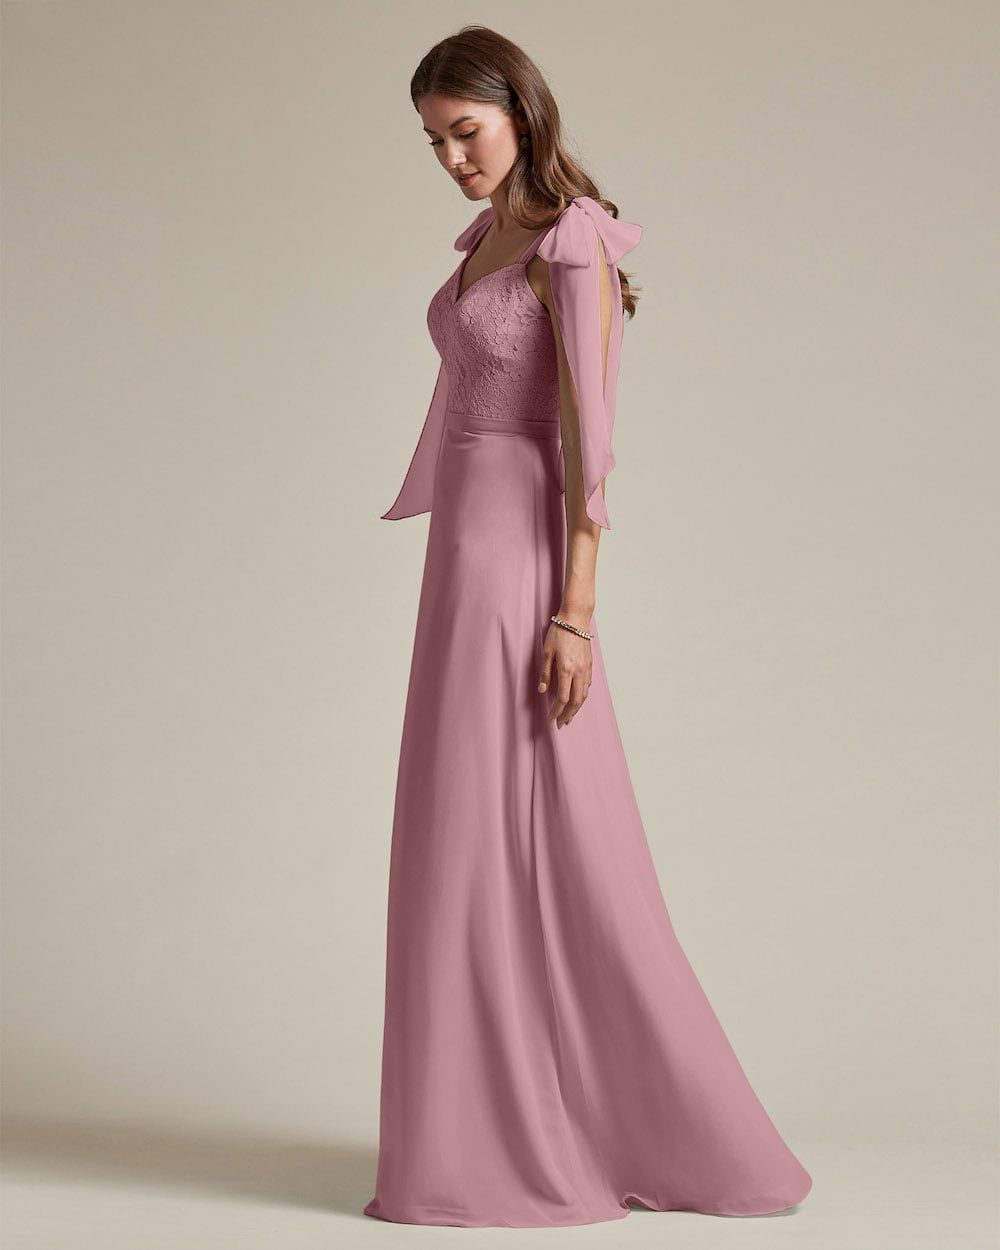 Ribbon Detail Shoulder With Embroidered Top Maid of Honor Dress - Side